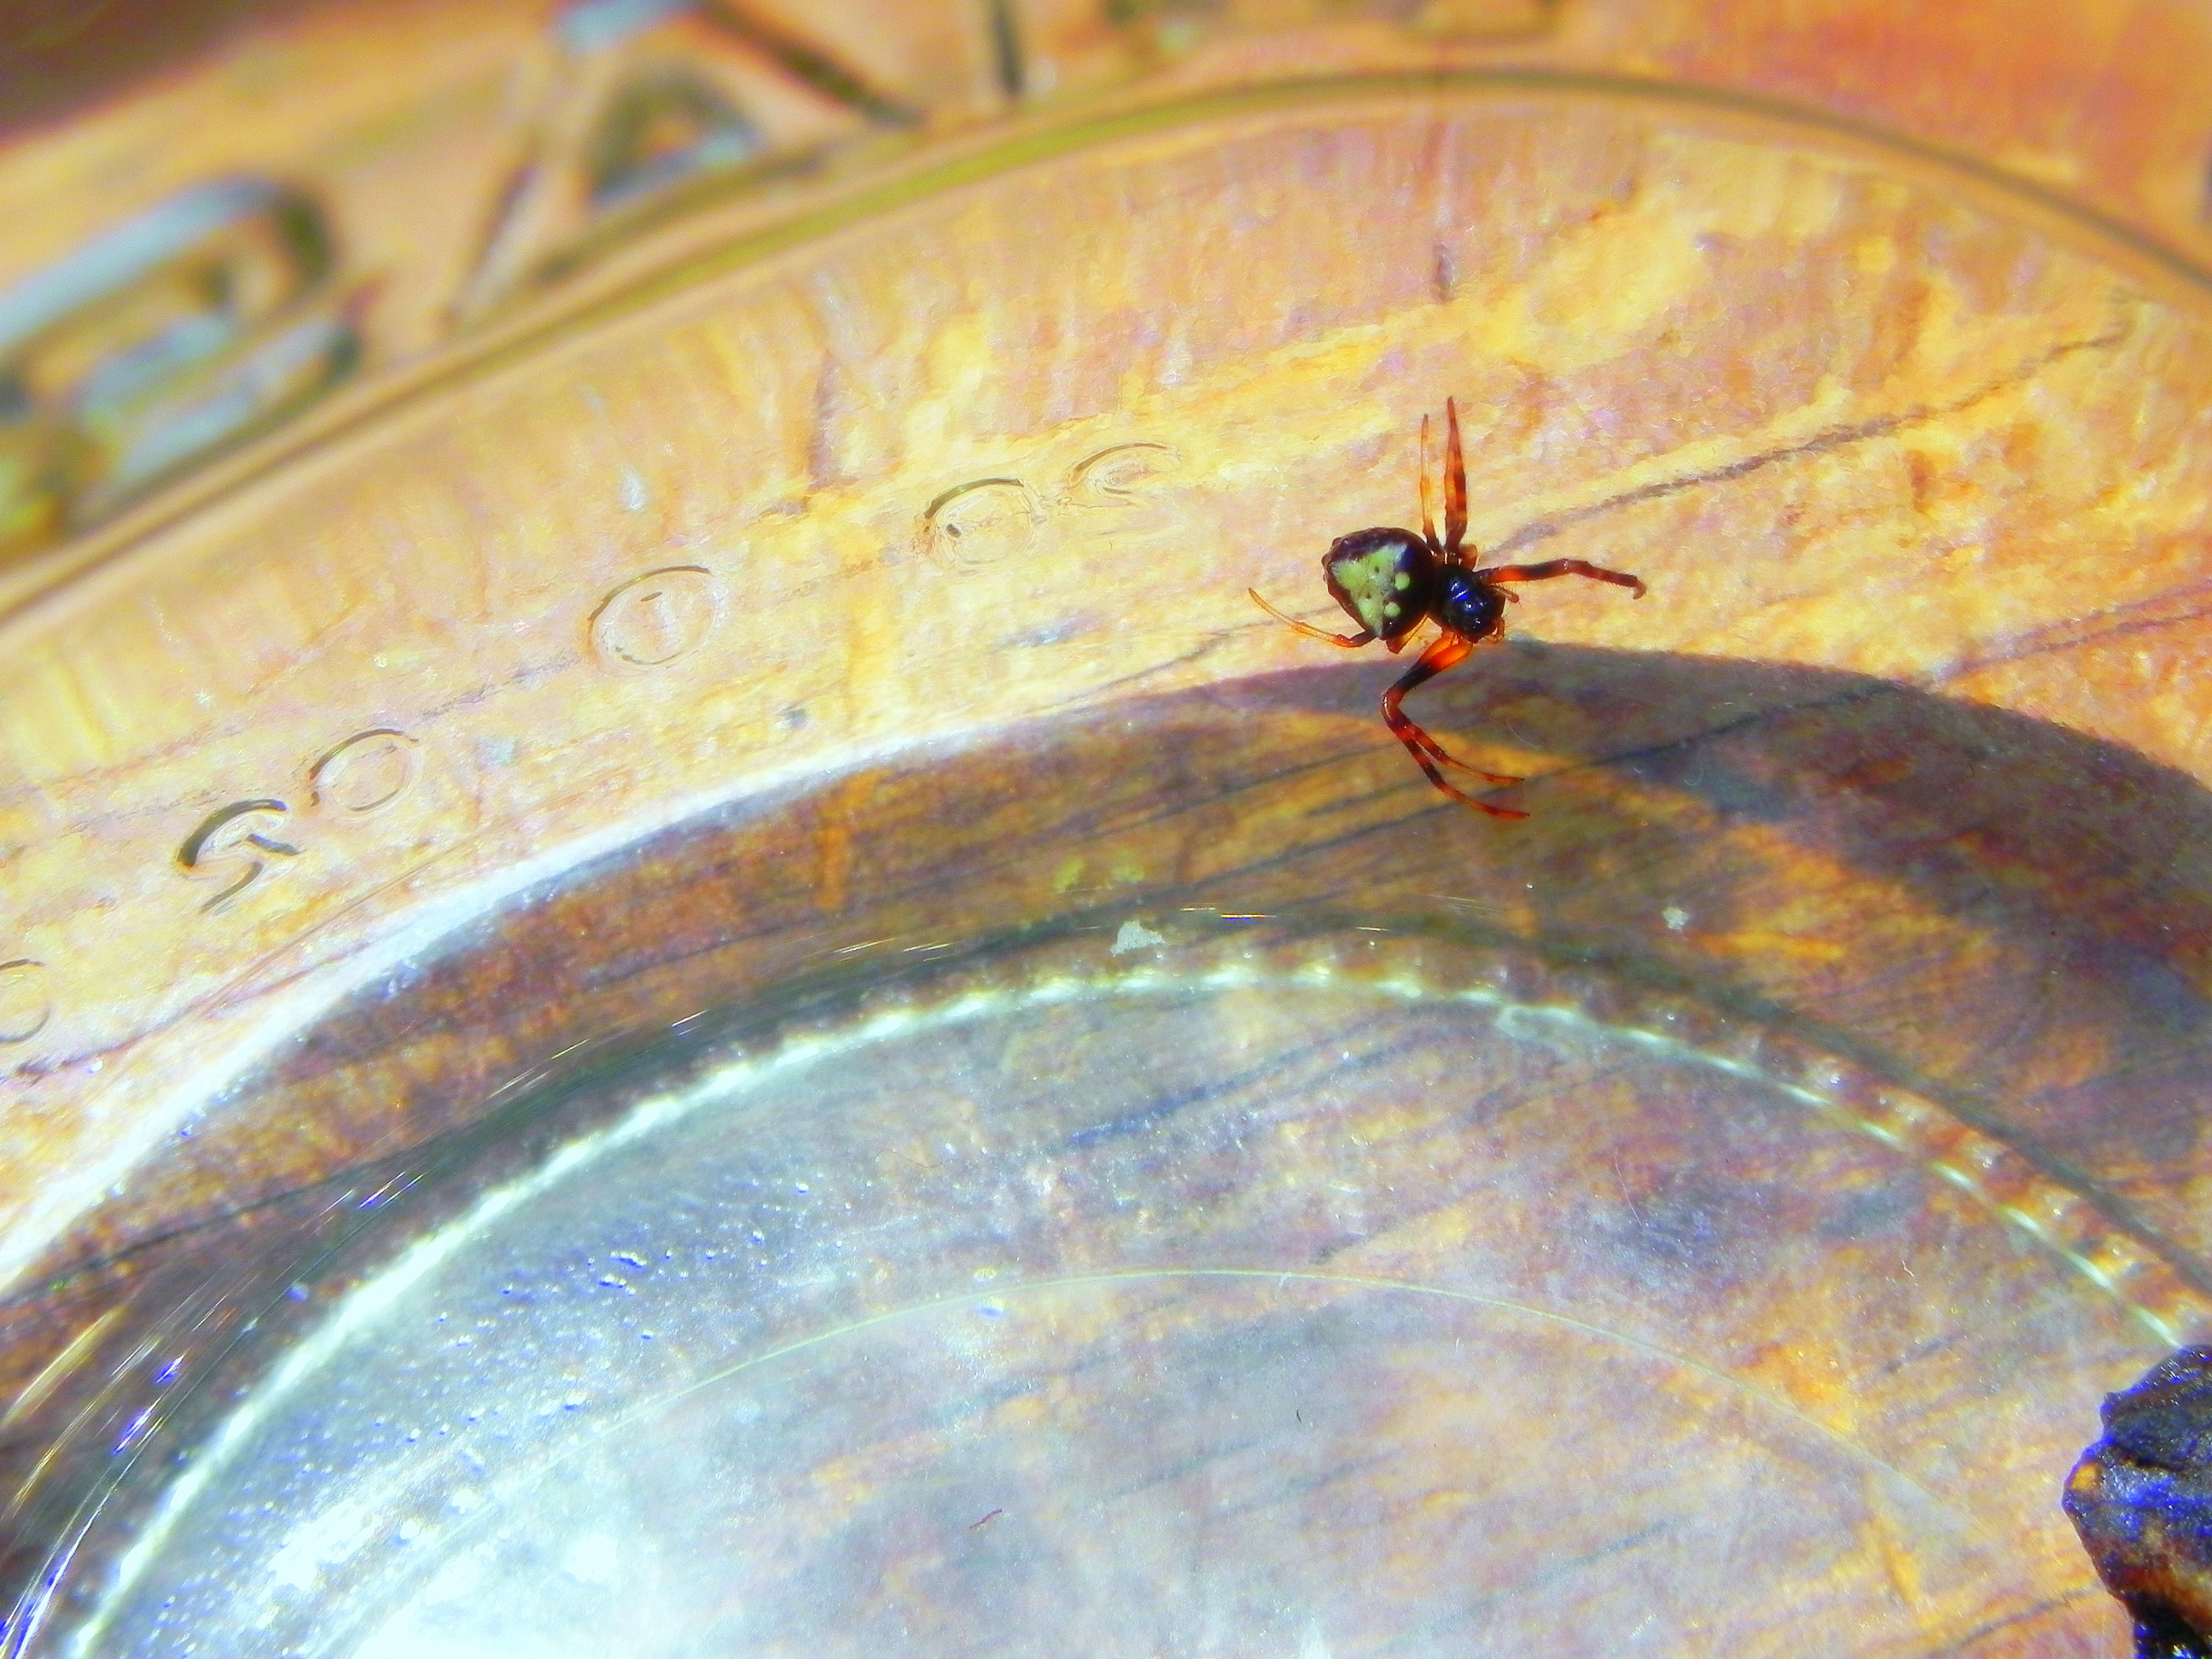 Digitally manipulated macro photograph of spider dropping into a pie plate.